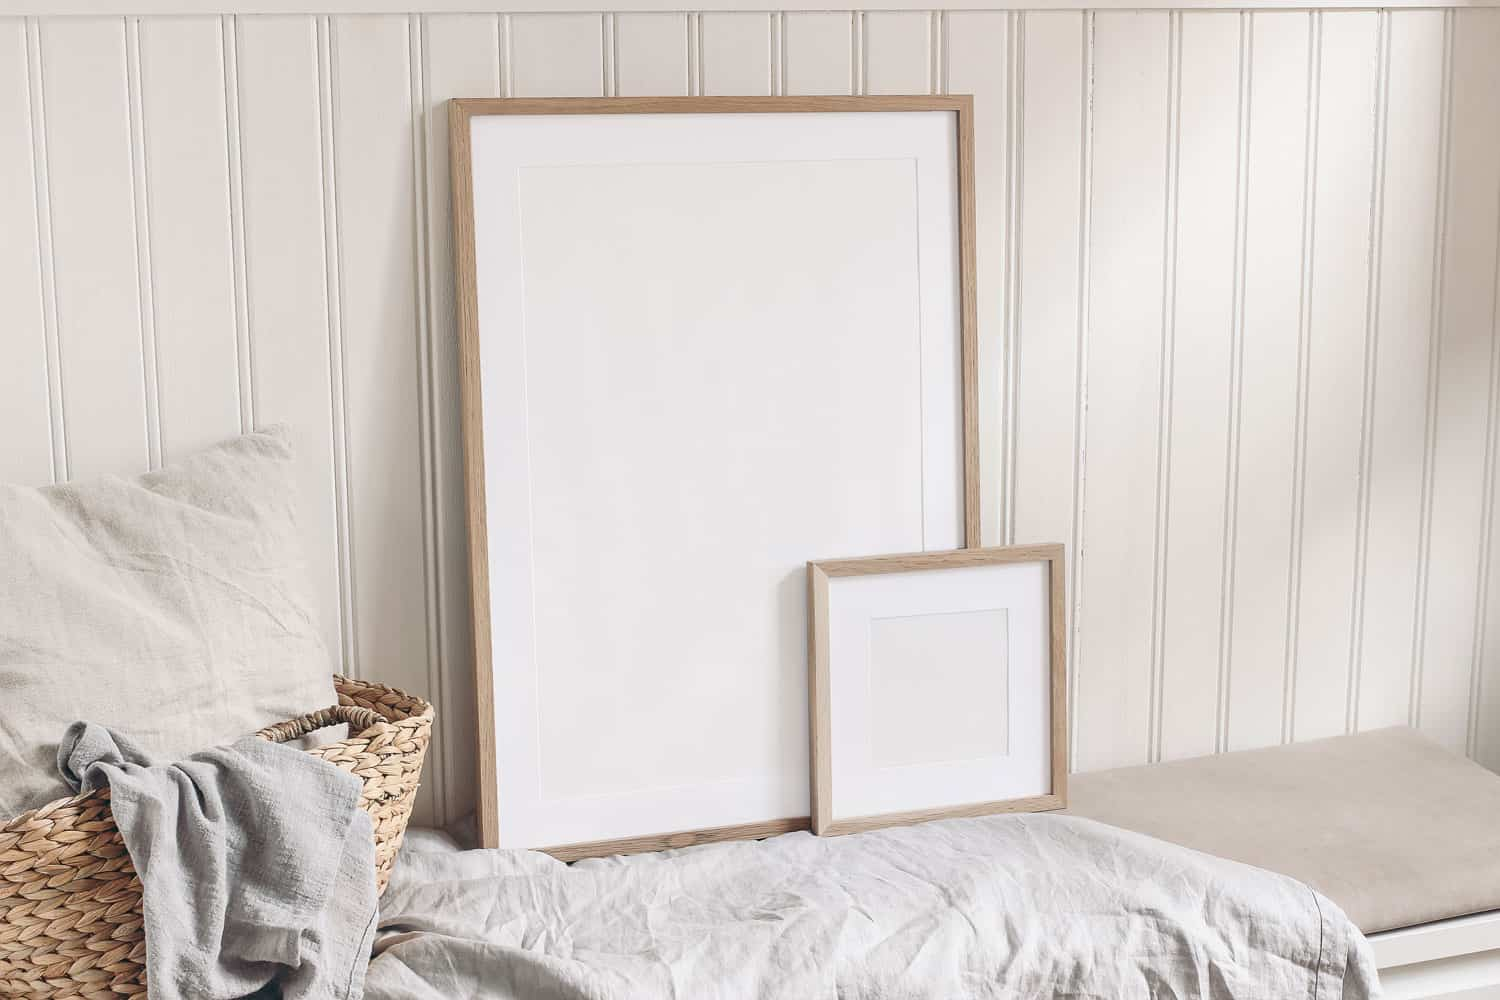 Mock up picture frames placed on the side of a plastic paneling